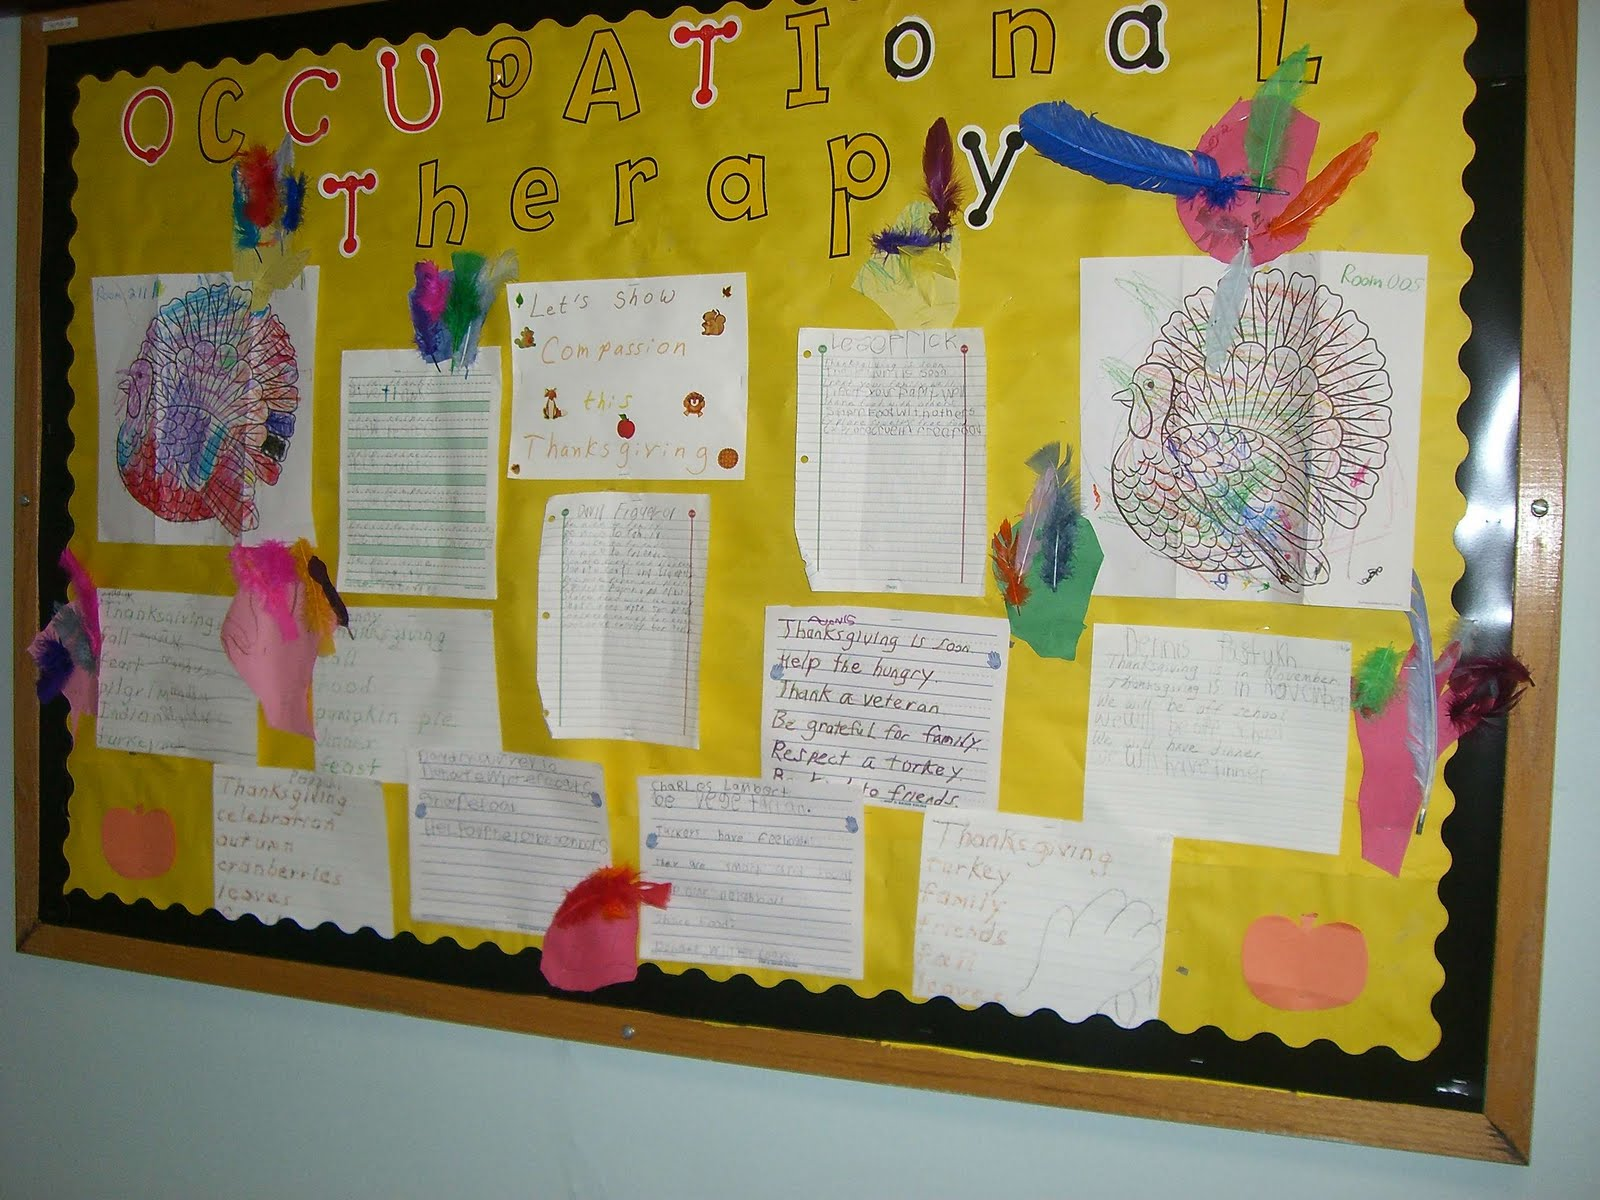 bulletin board at another school of turkeys and handwriting samples.